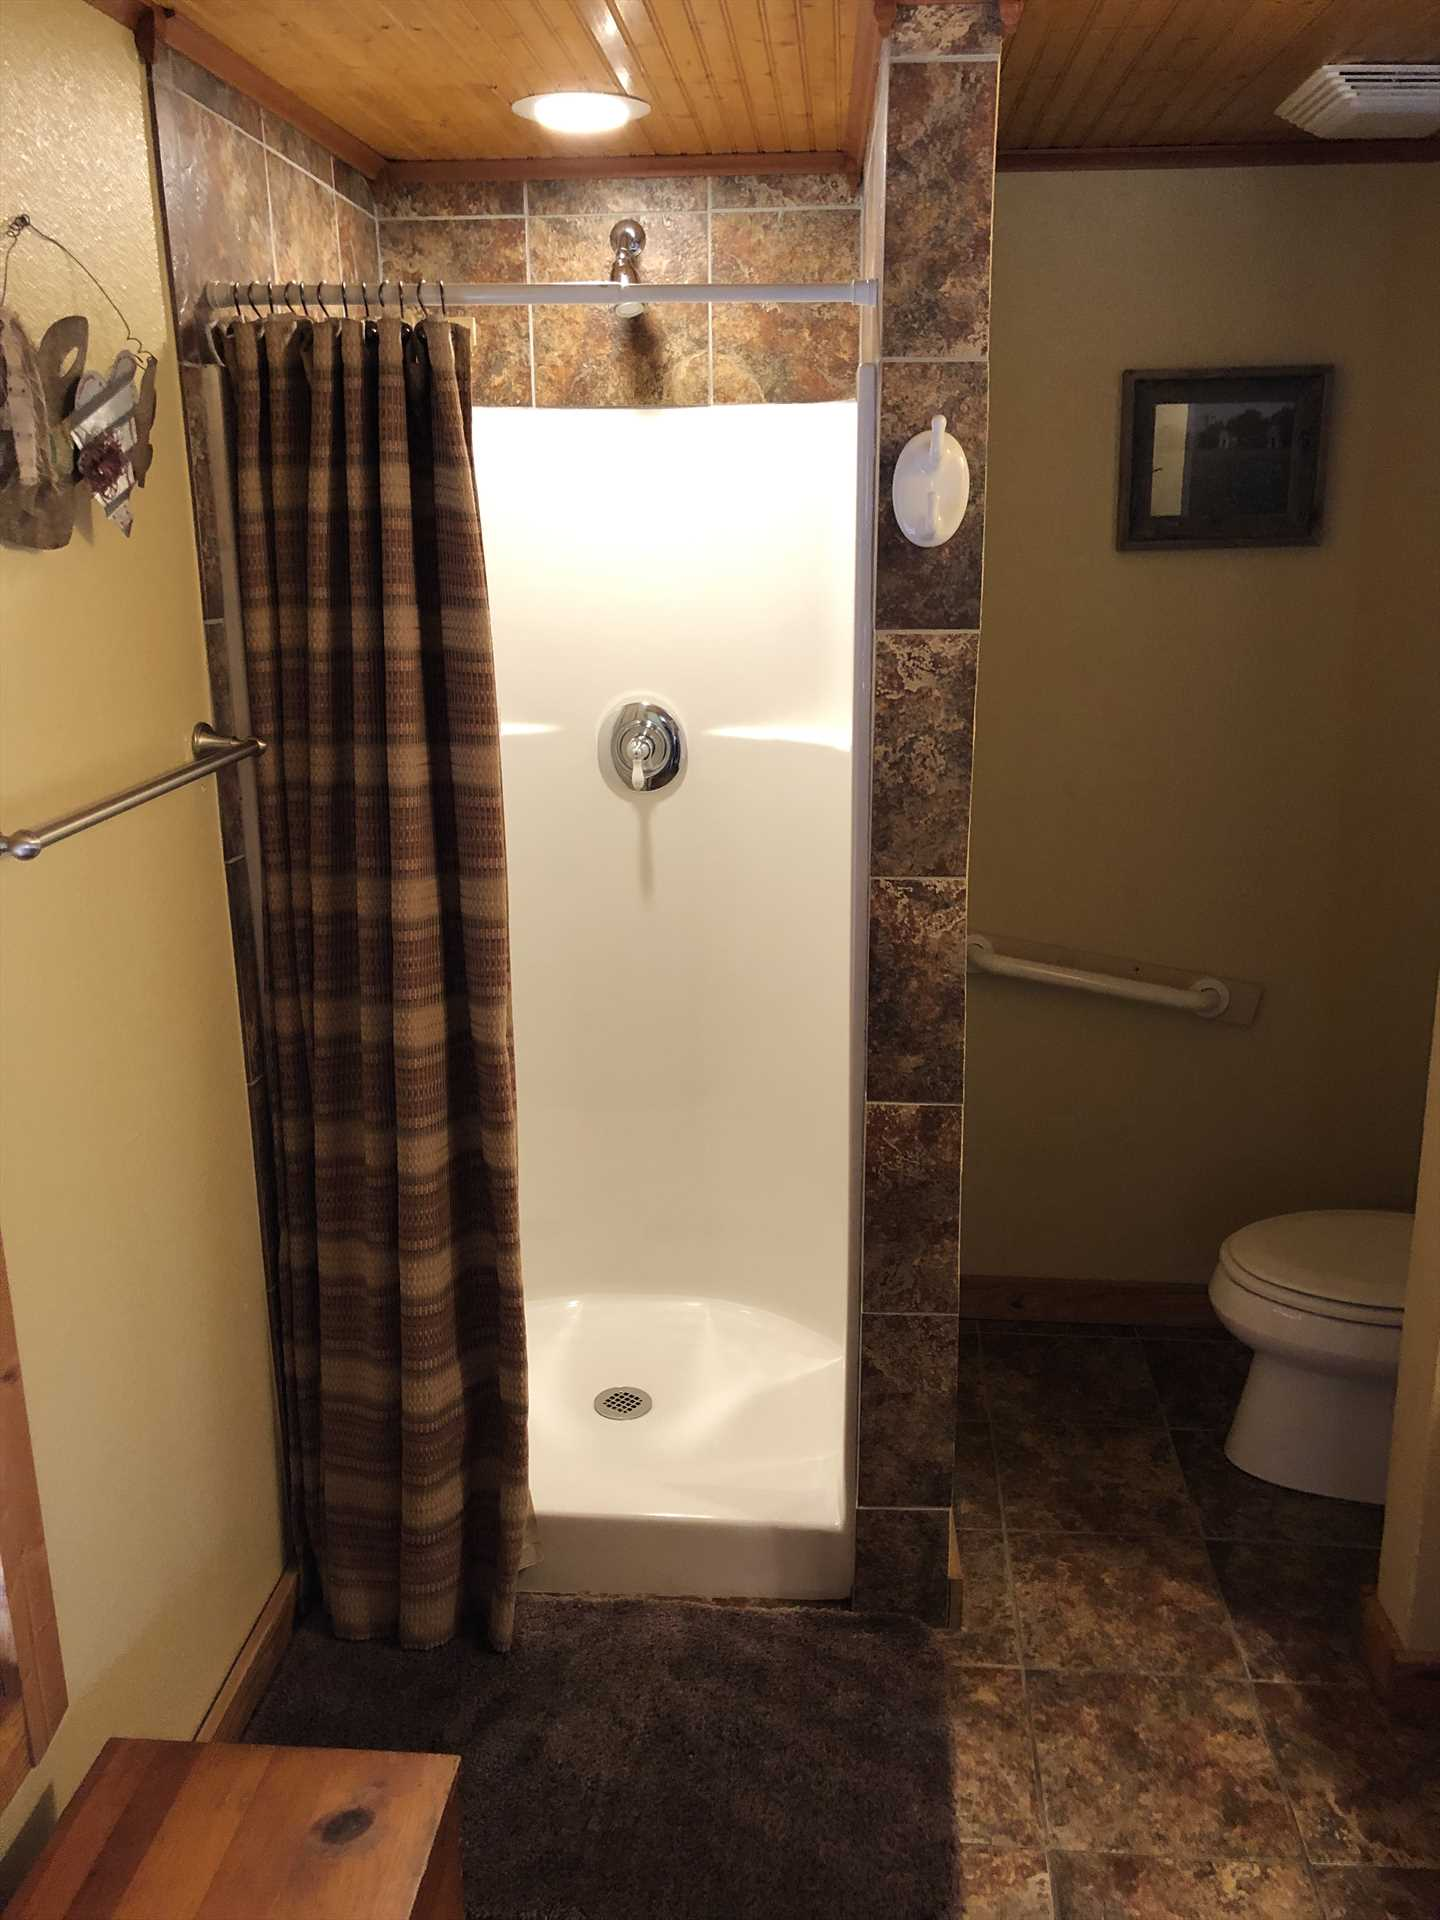 Your full bath here is spotlessly clean, and features a shower and plenty of clean linens.